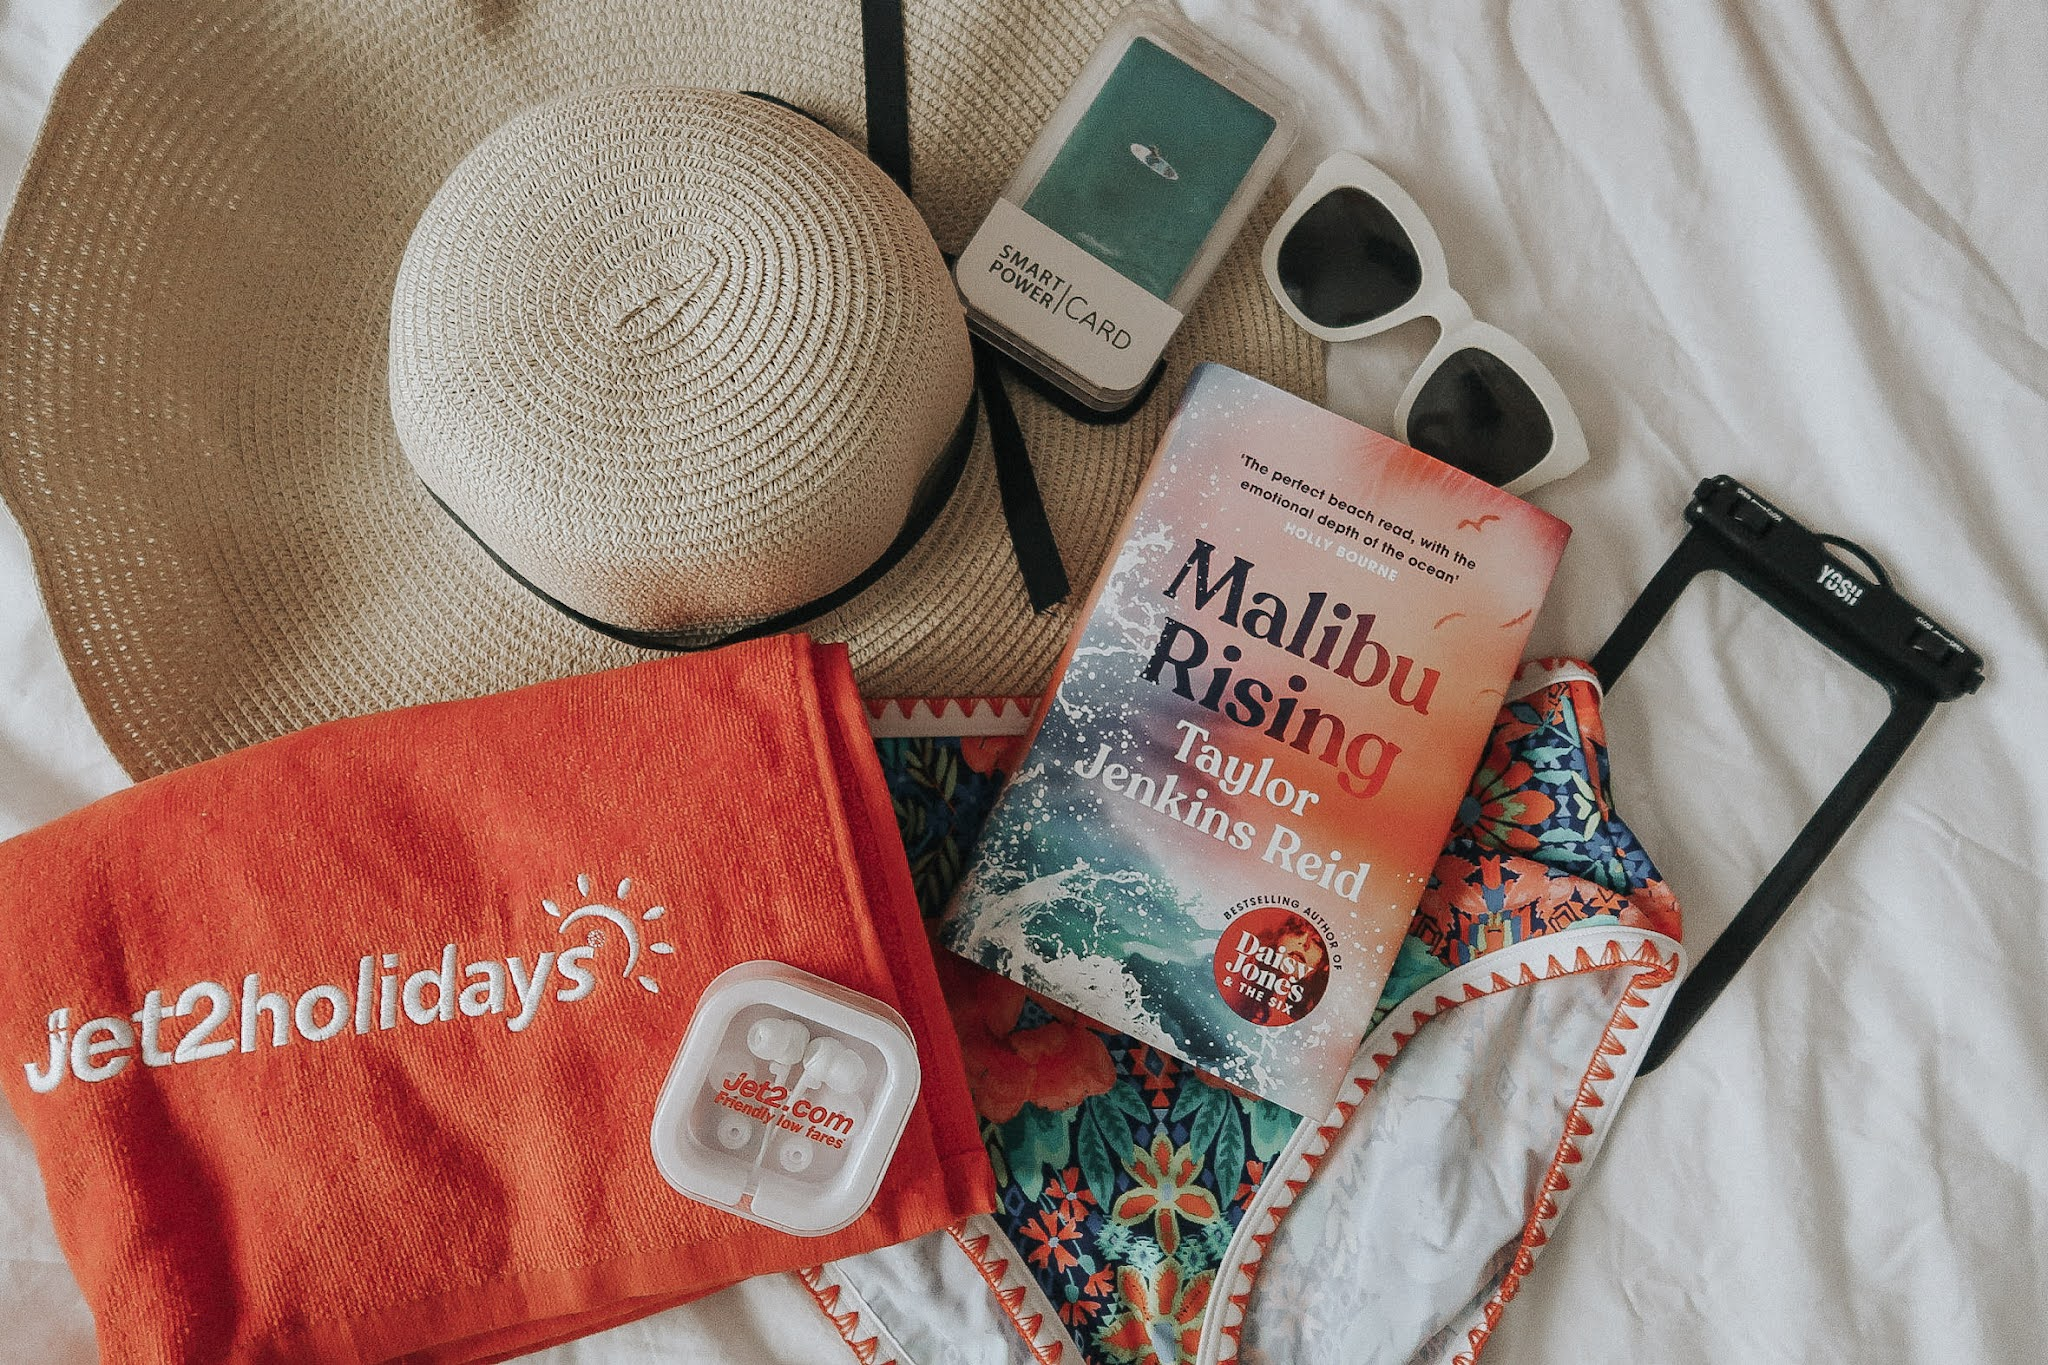 A red beach towel, a pink book, white sunglasses and large beach hat.